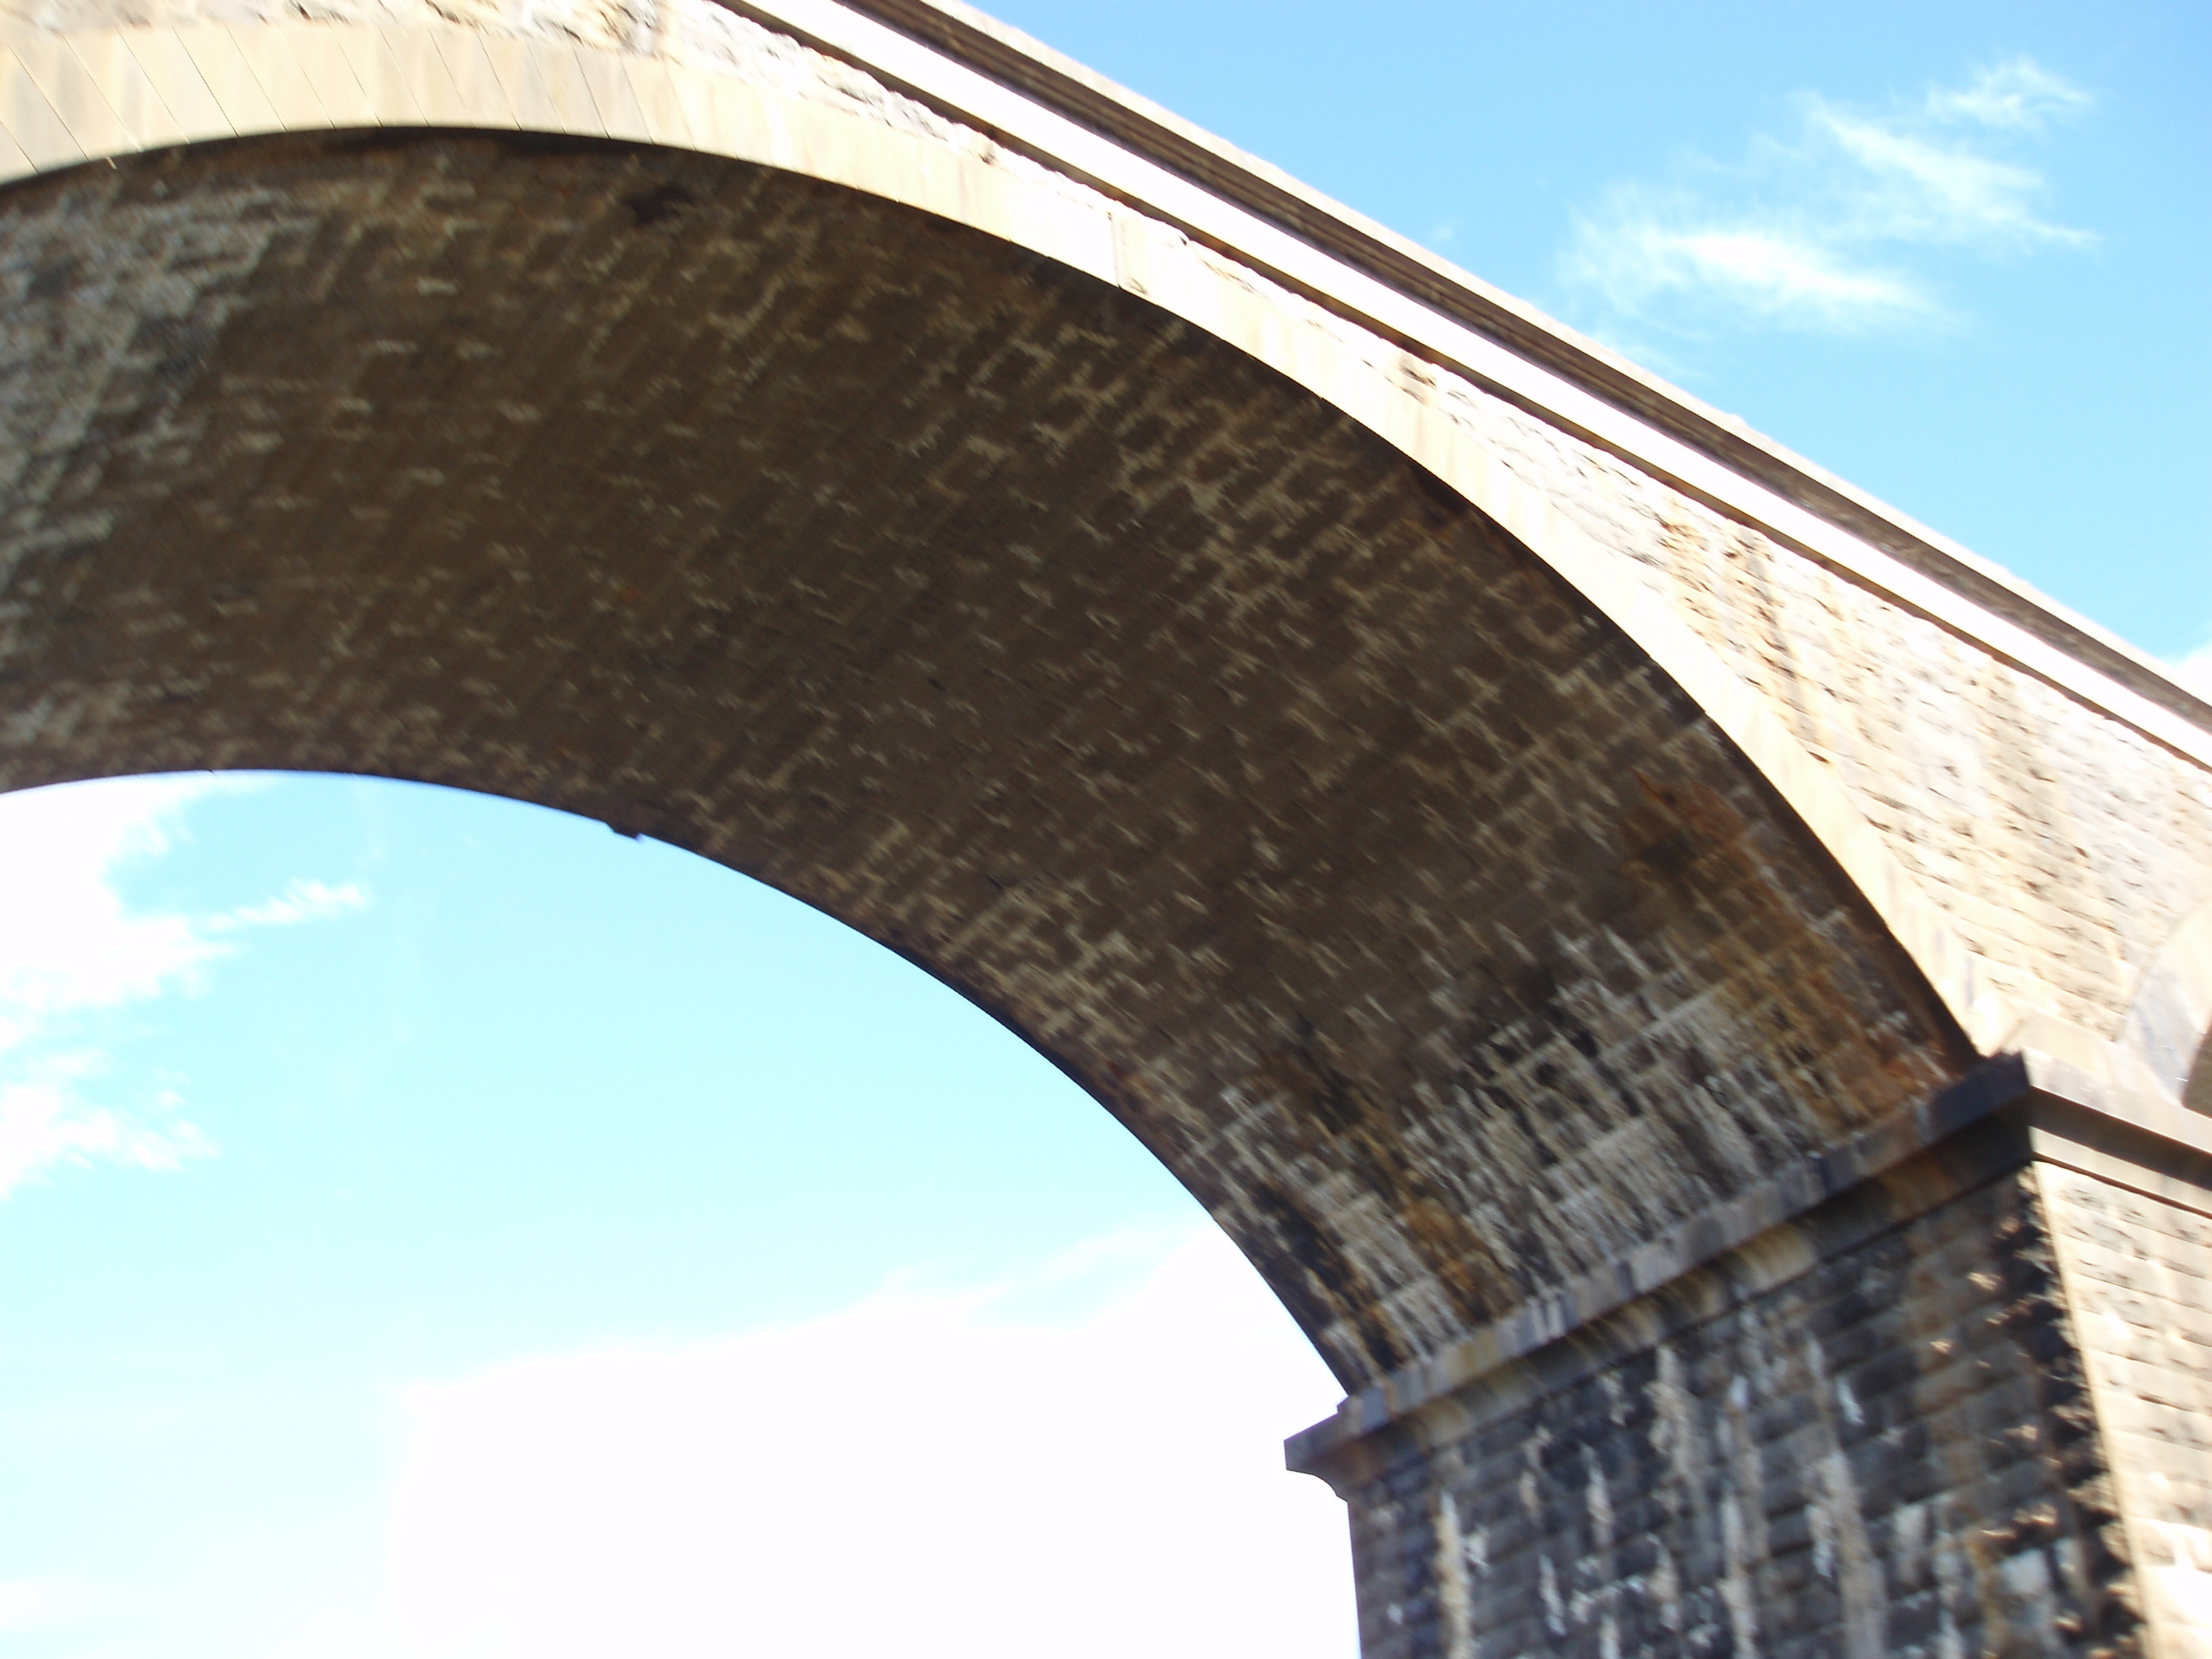 overexposed image of a railway viaduct stone arch